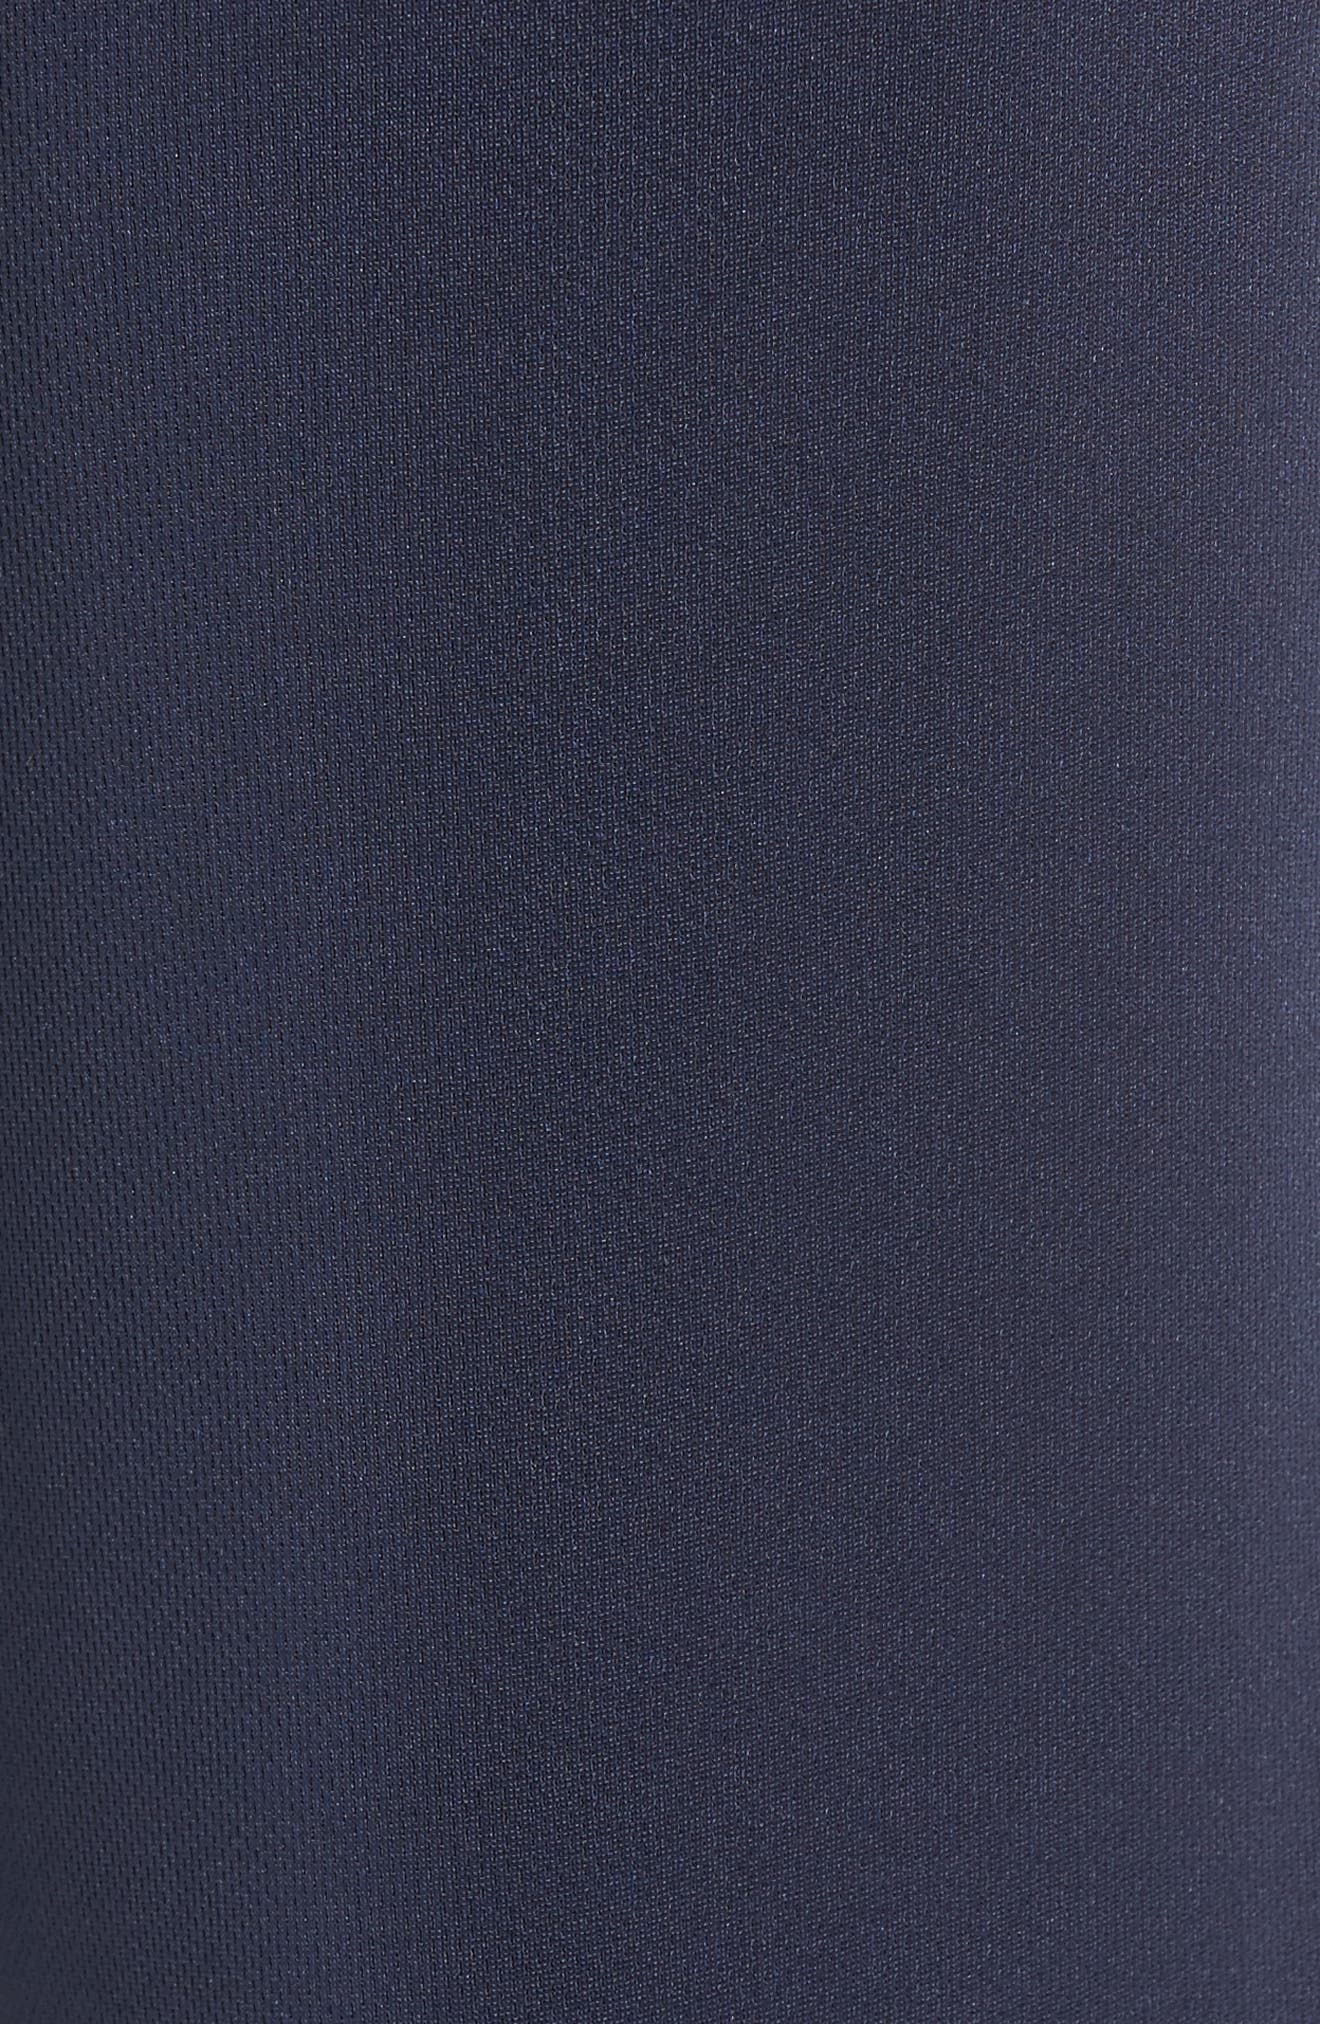 Work Out Lounge Pants,                             Alternate thumbnail 15, color,